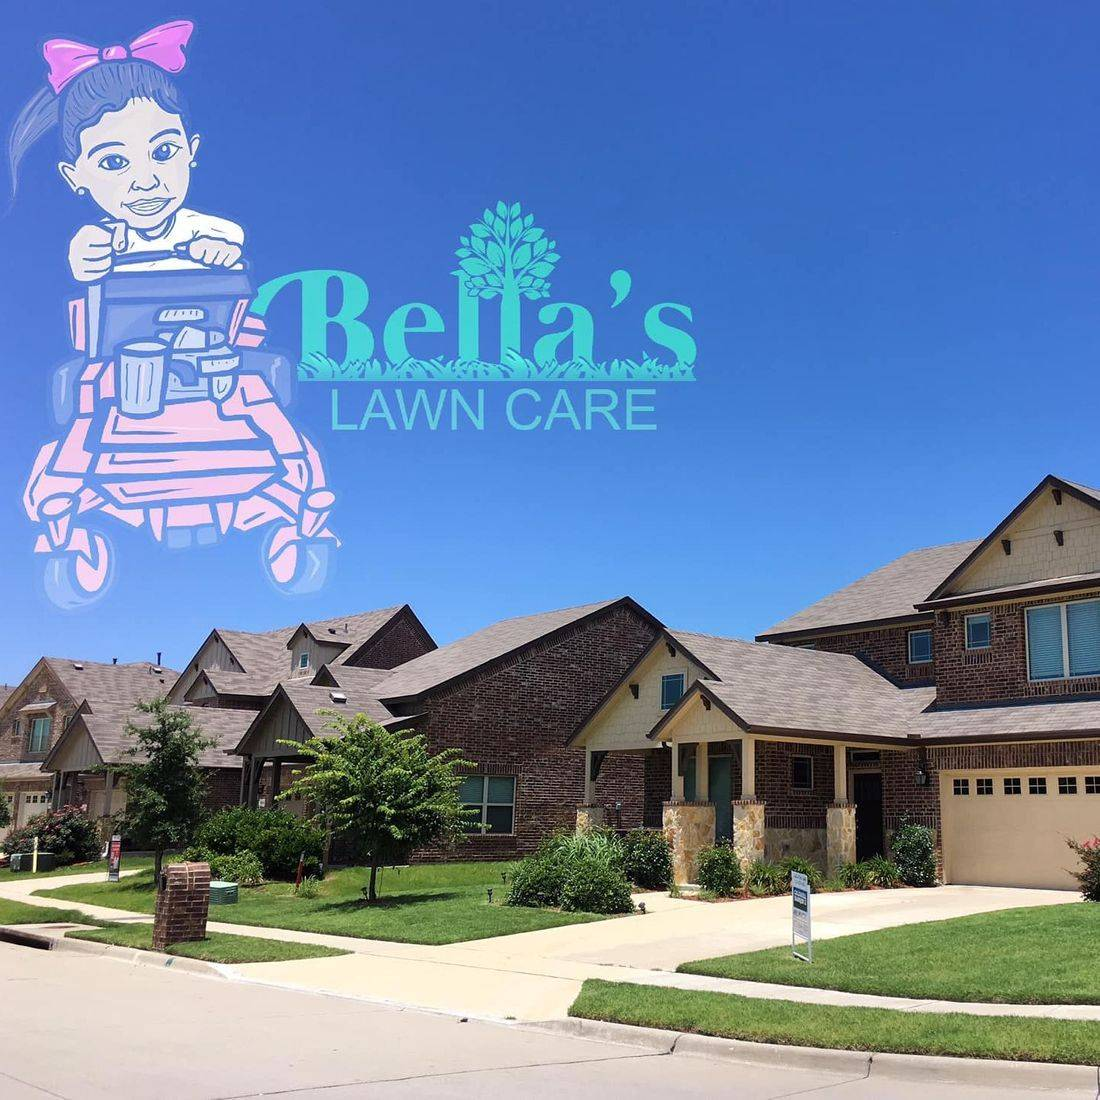 BELLAS LAWN CARE ROWLETT TEXAS 75089